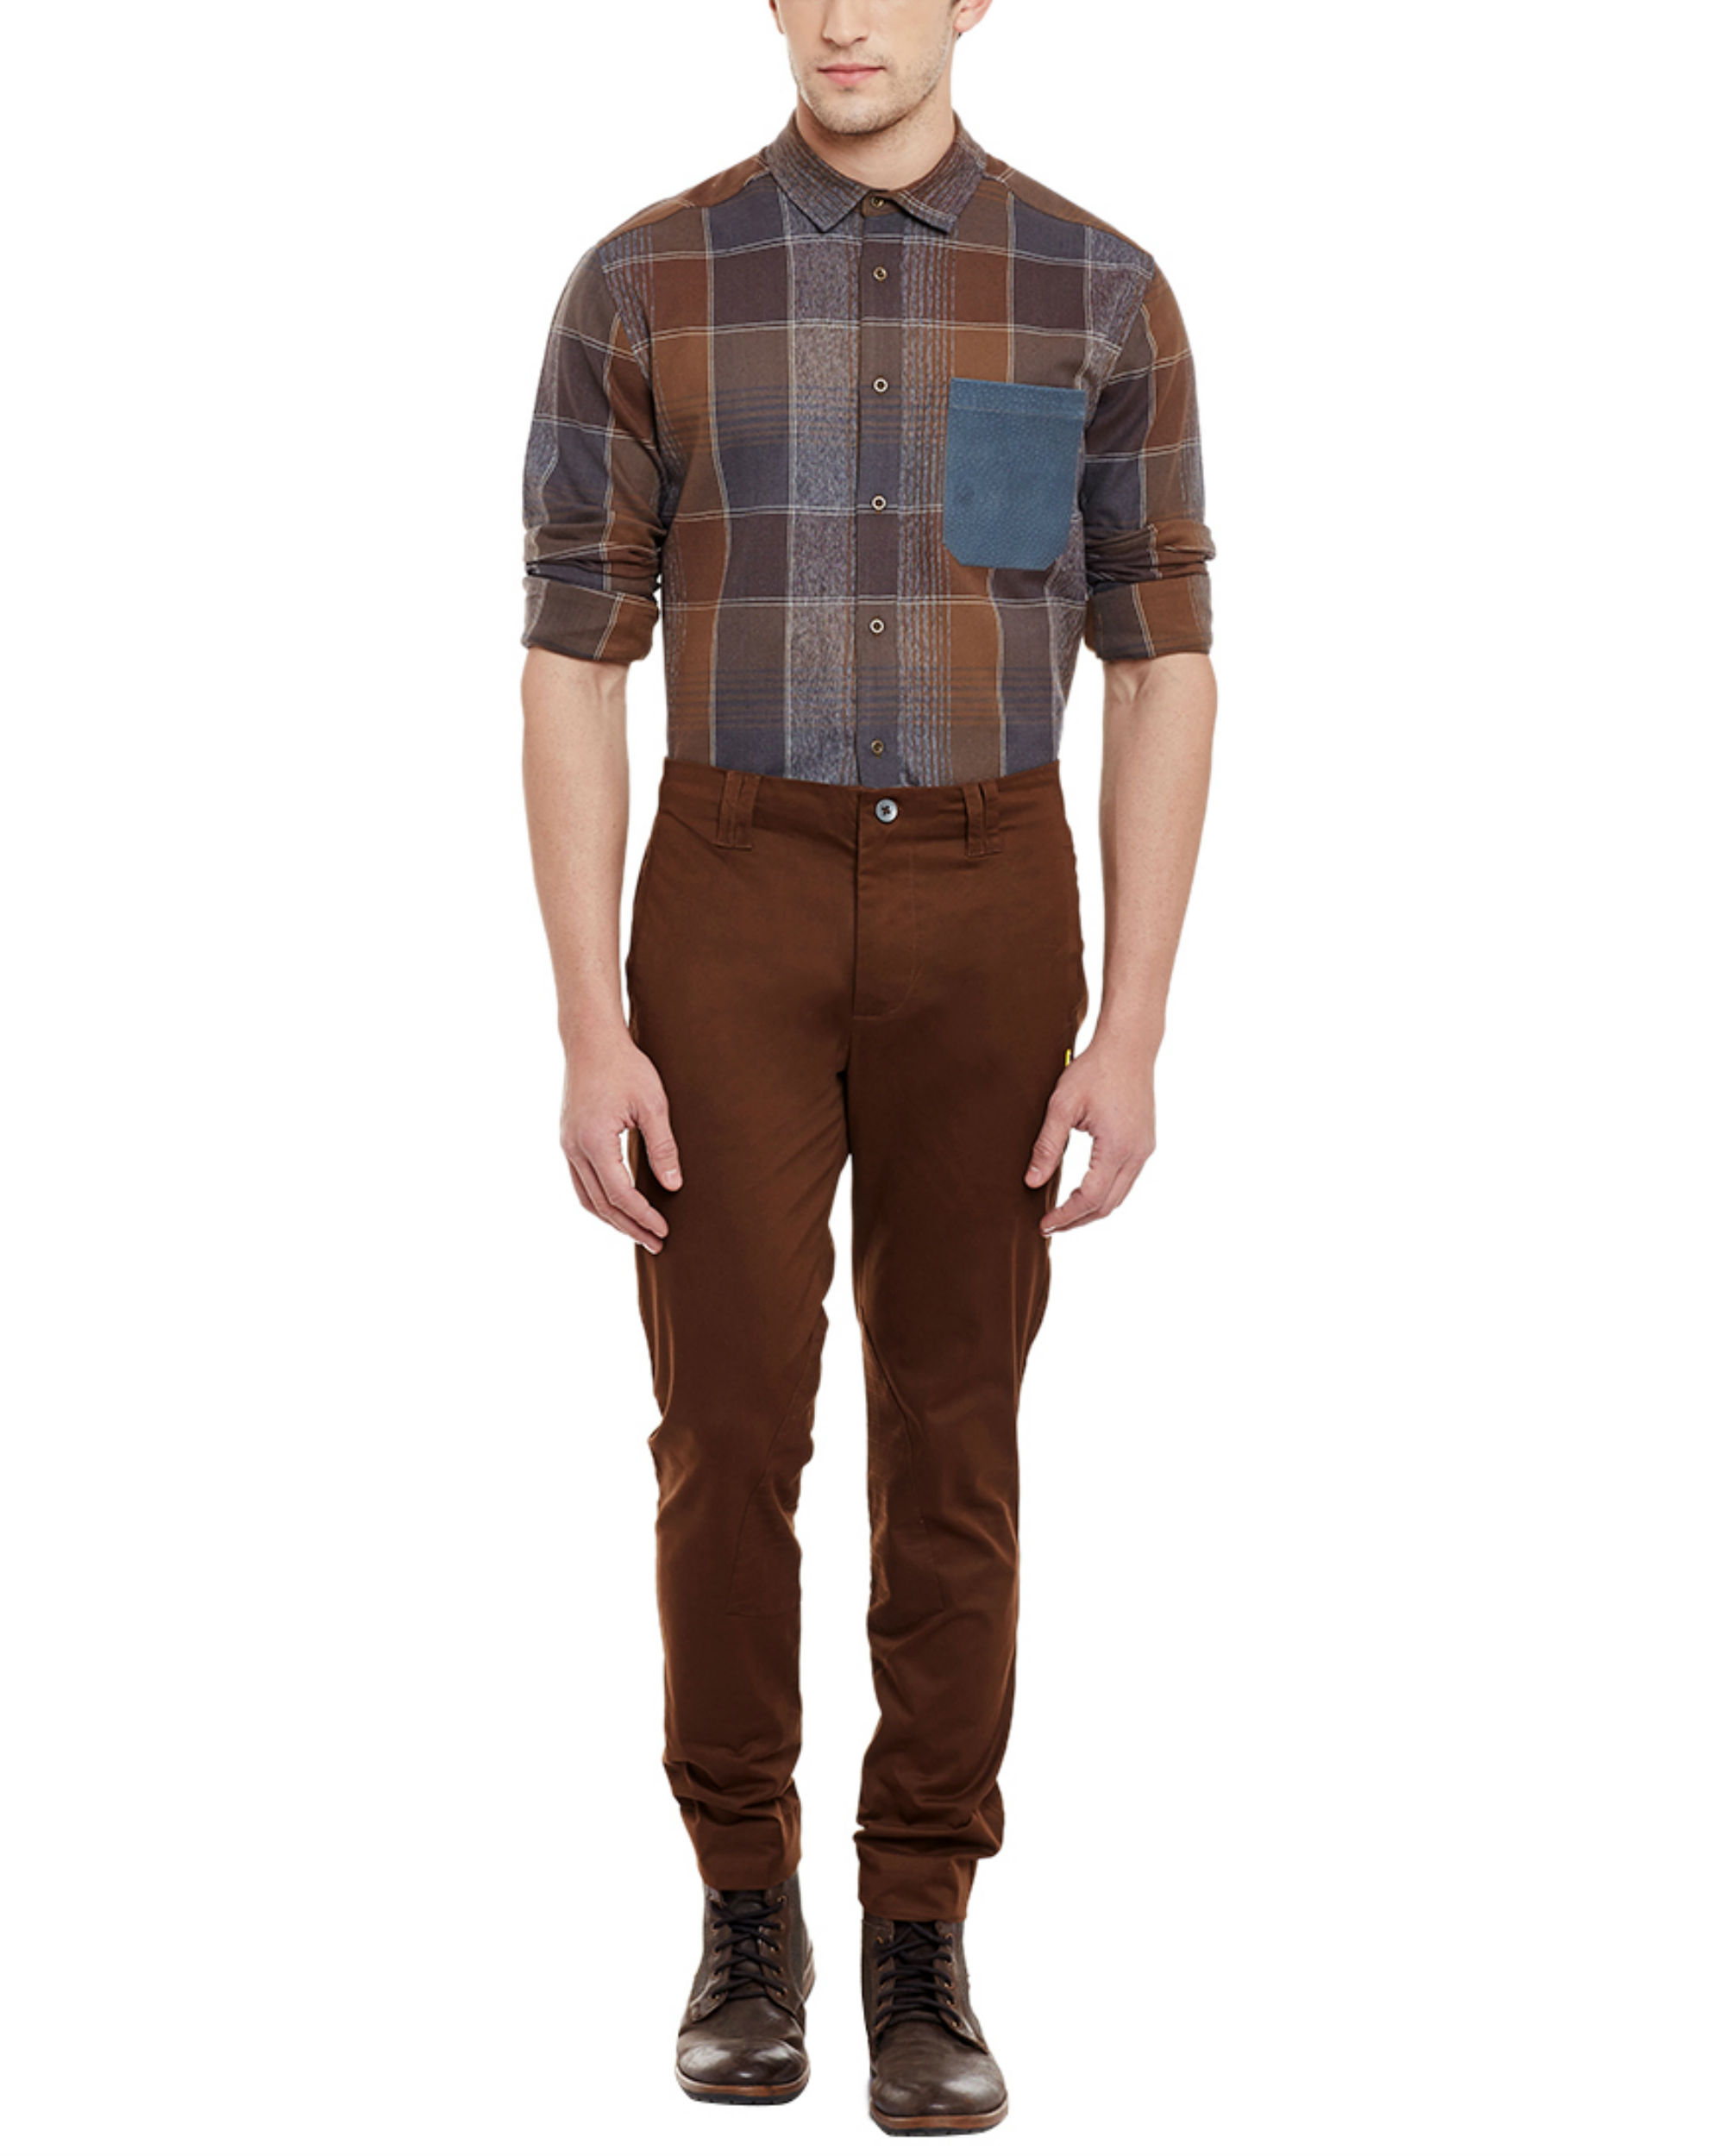 Deep brown riding trousers